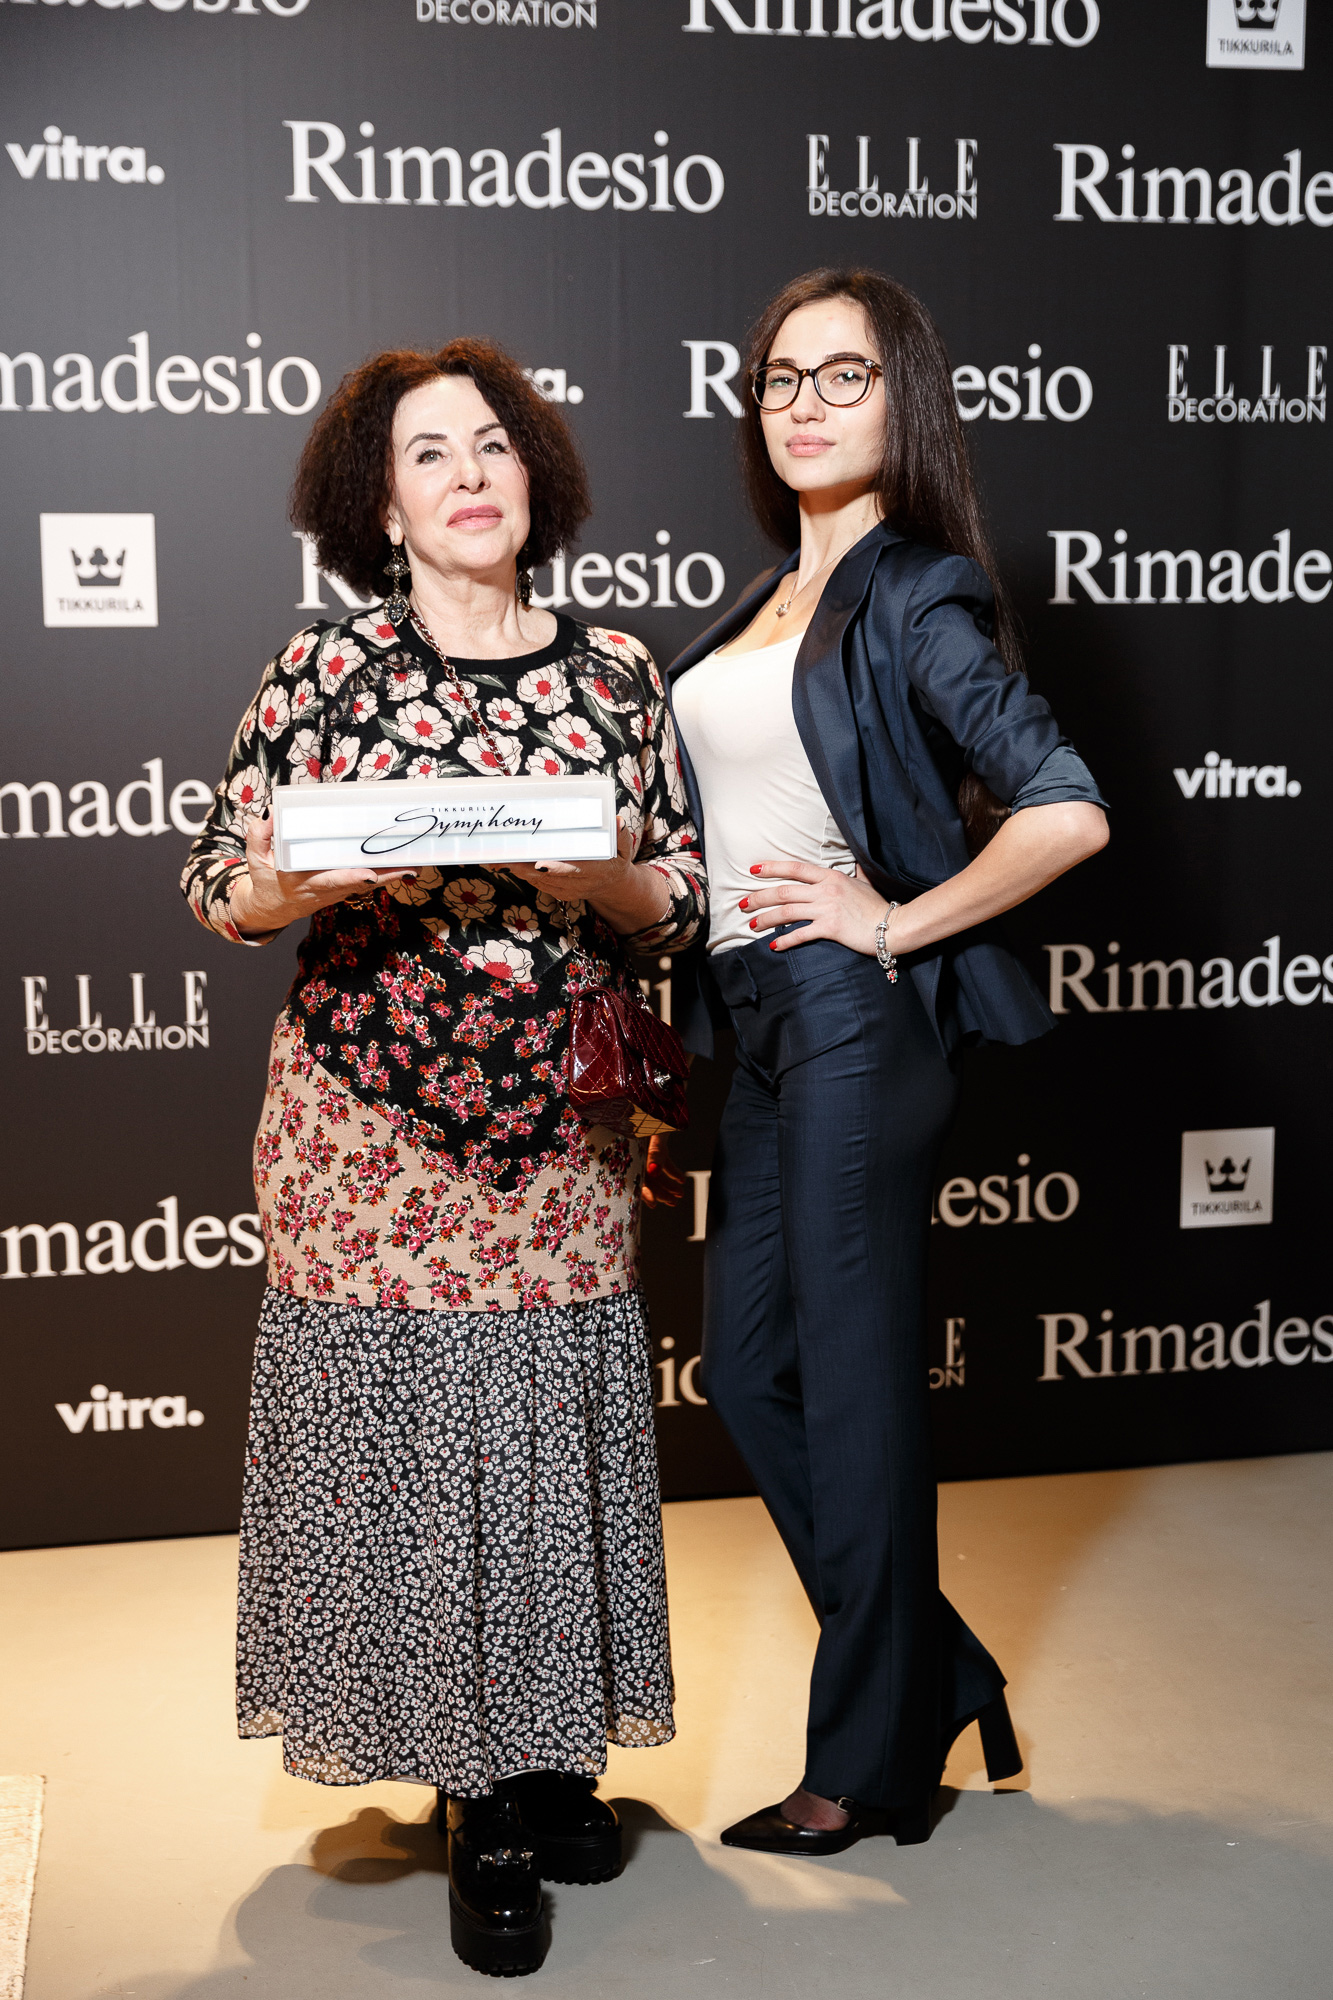 rimadesio-moscow-242